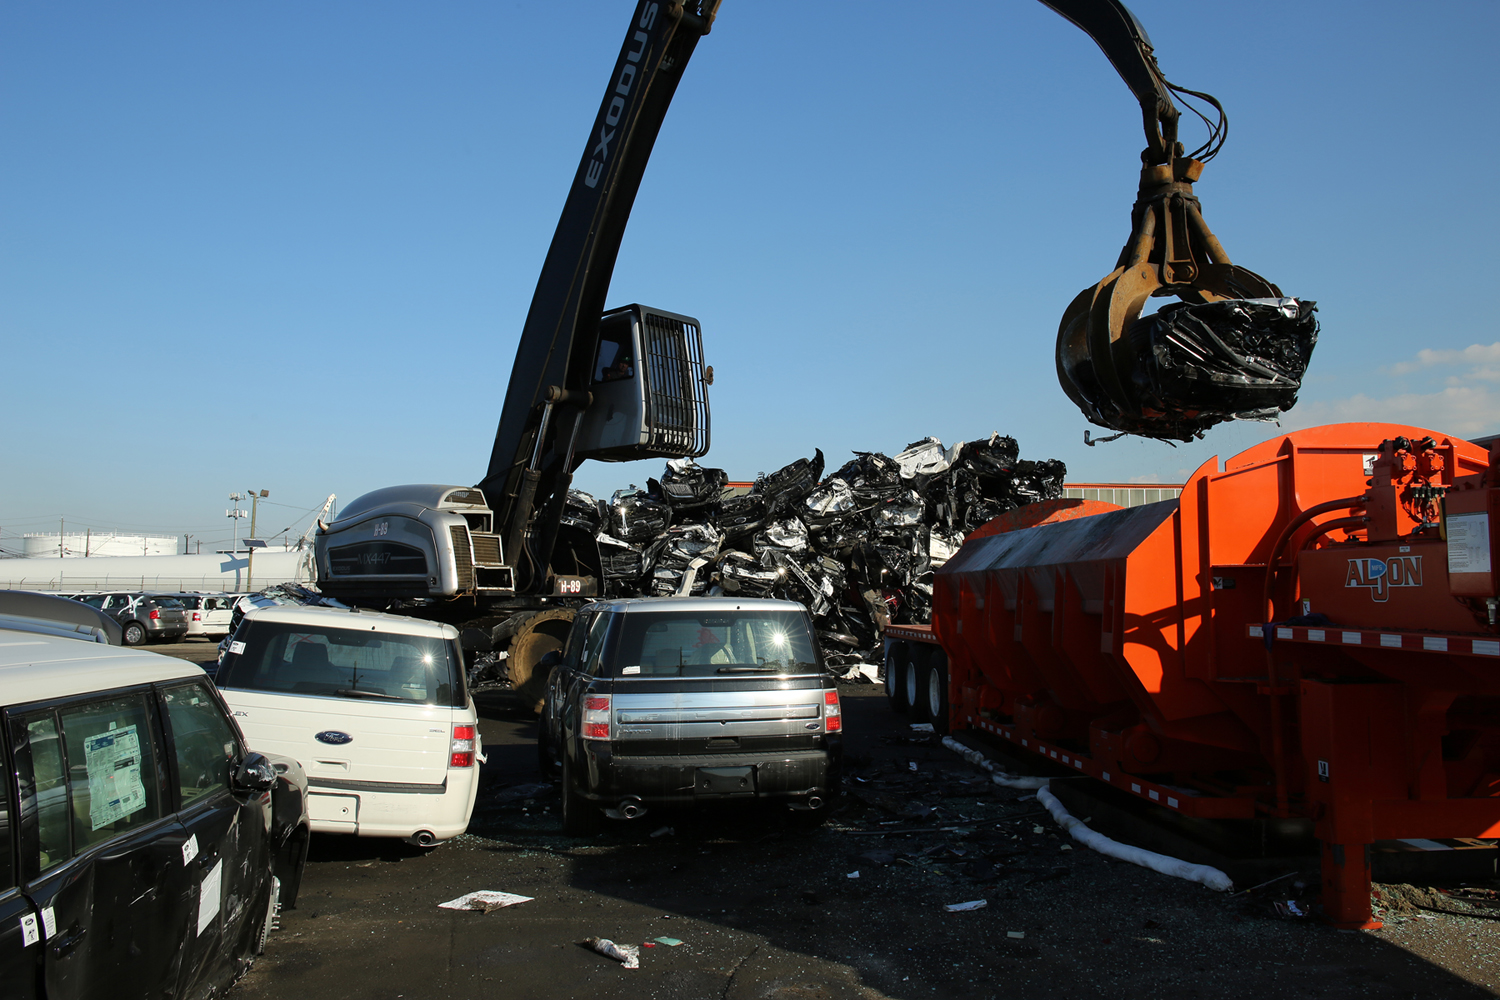 Photo of a car recycler. 85% of all used automobiles are recycled, providing large quantities of metals and other materials.